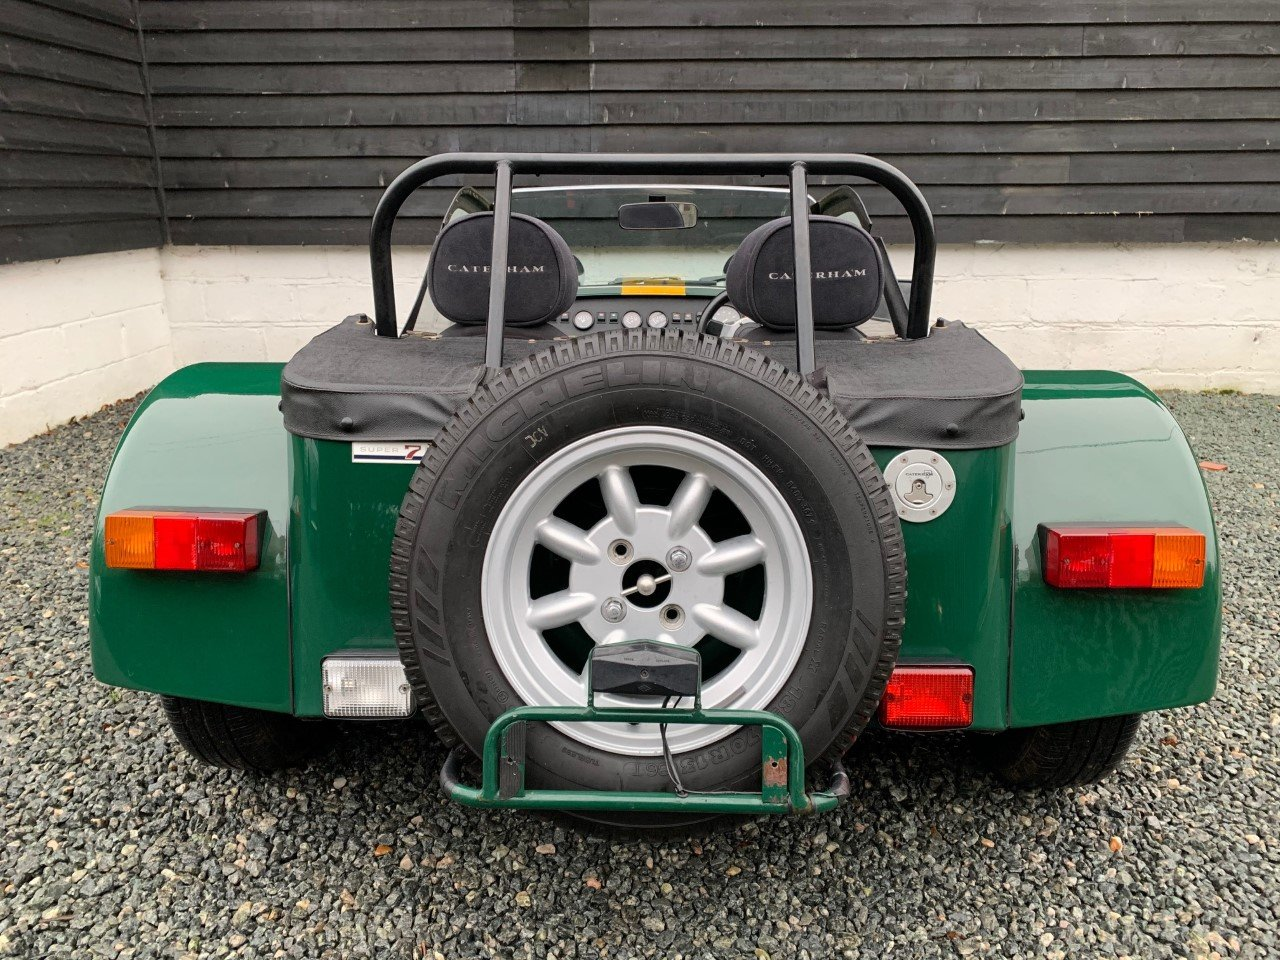 1998 Caterham Classic 1.6 VX Vauxhall 100bhp 5 speed For Sale (picture 5 of 6)